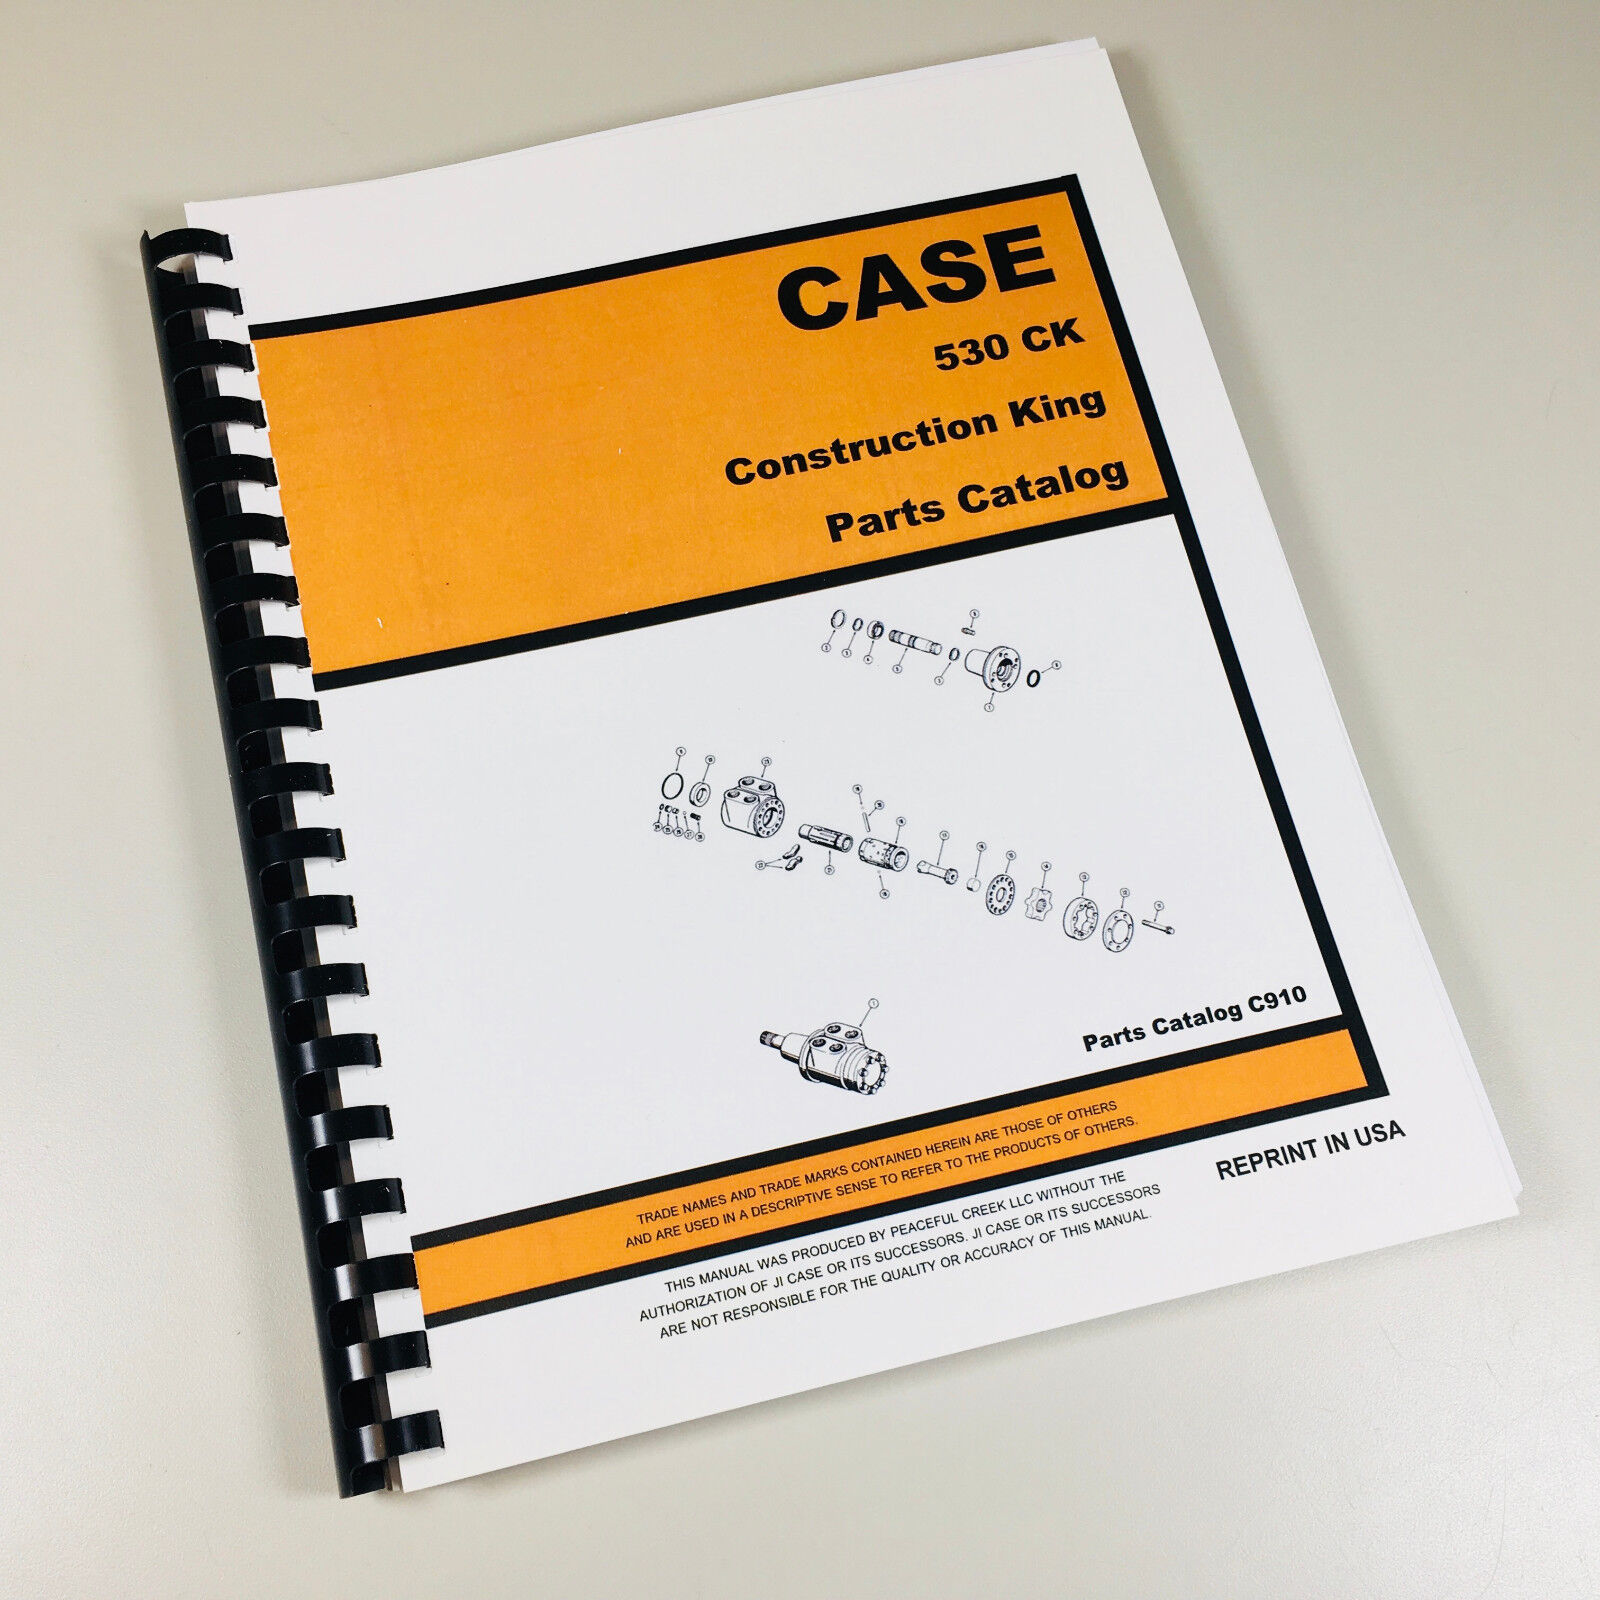 Case 530Ck 530 Ck Tractor Construction King Parts Catalog Manual Exploded  Views 1 of 8FREE Shipping ...